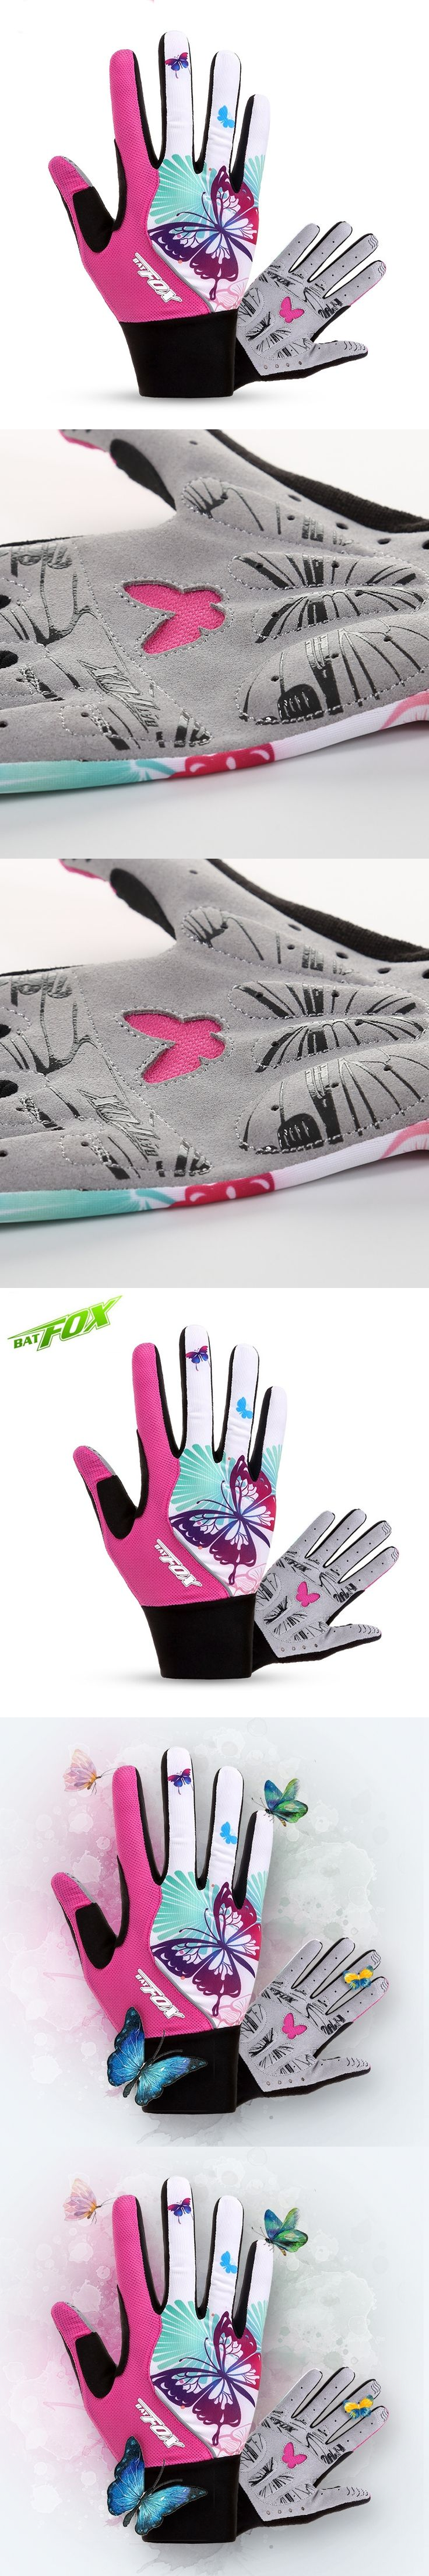 2017 Women MTB Bike Sport Gloves Shock Absorption Nylon Cotton Cycling Gloves Washable Fitness Cycling Gloves Full Finger F-553